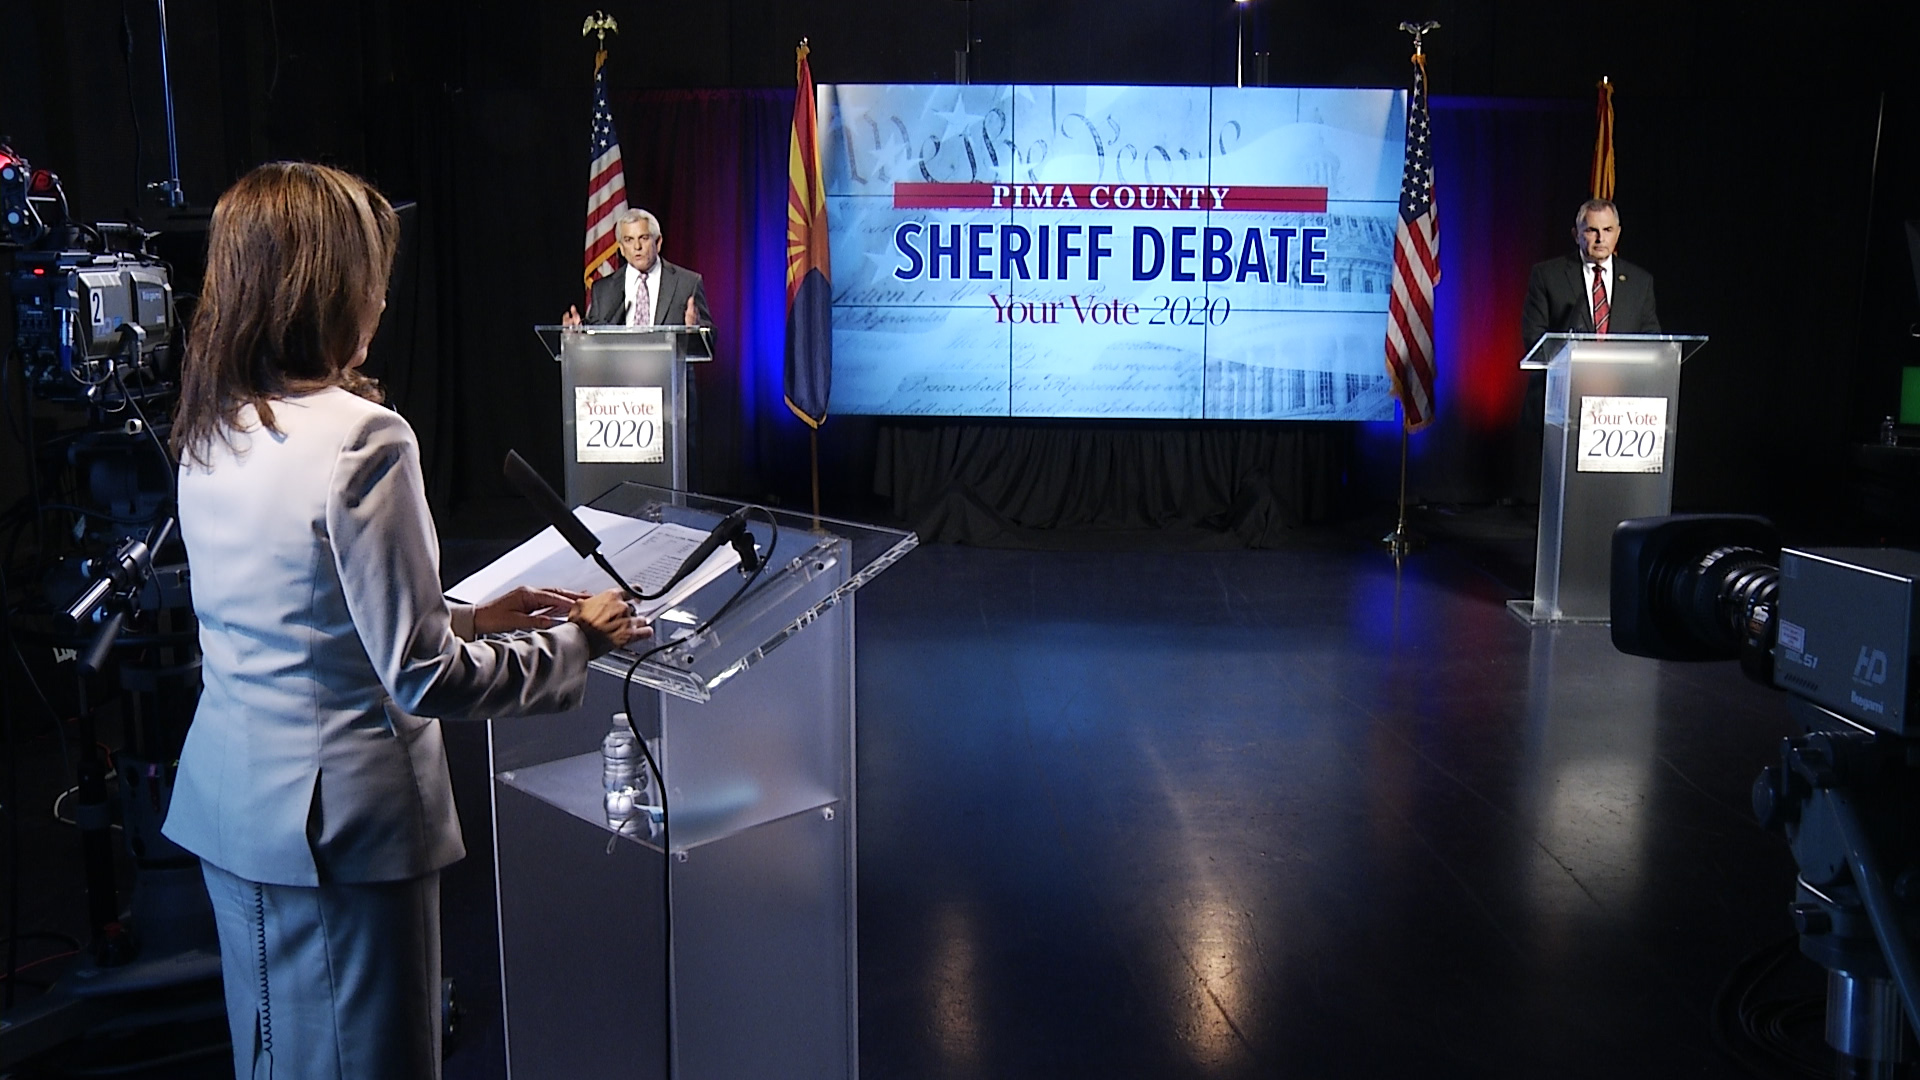 (From left to right) Arizona 360 host Lorraine Rivera moderates a debate in the race for Pima County sheriff between Democratic challenger Chris Nanos and Republican incumbent Mark Napier on September 21, 2020 at Arizona Public Media.